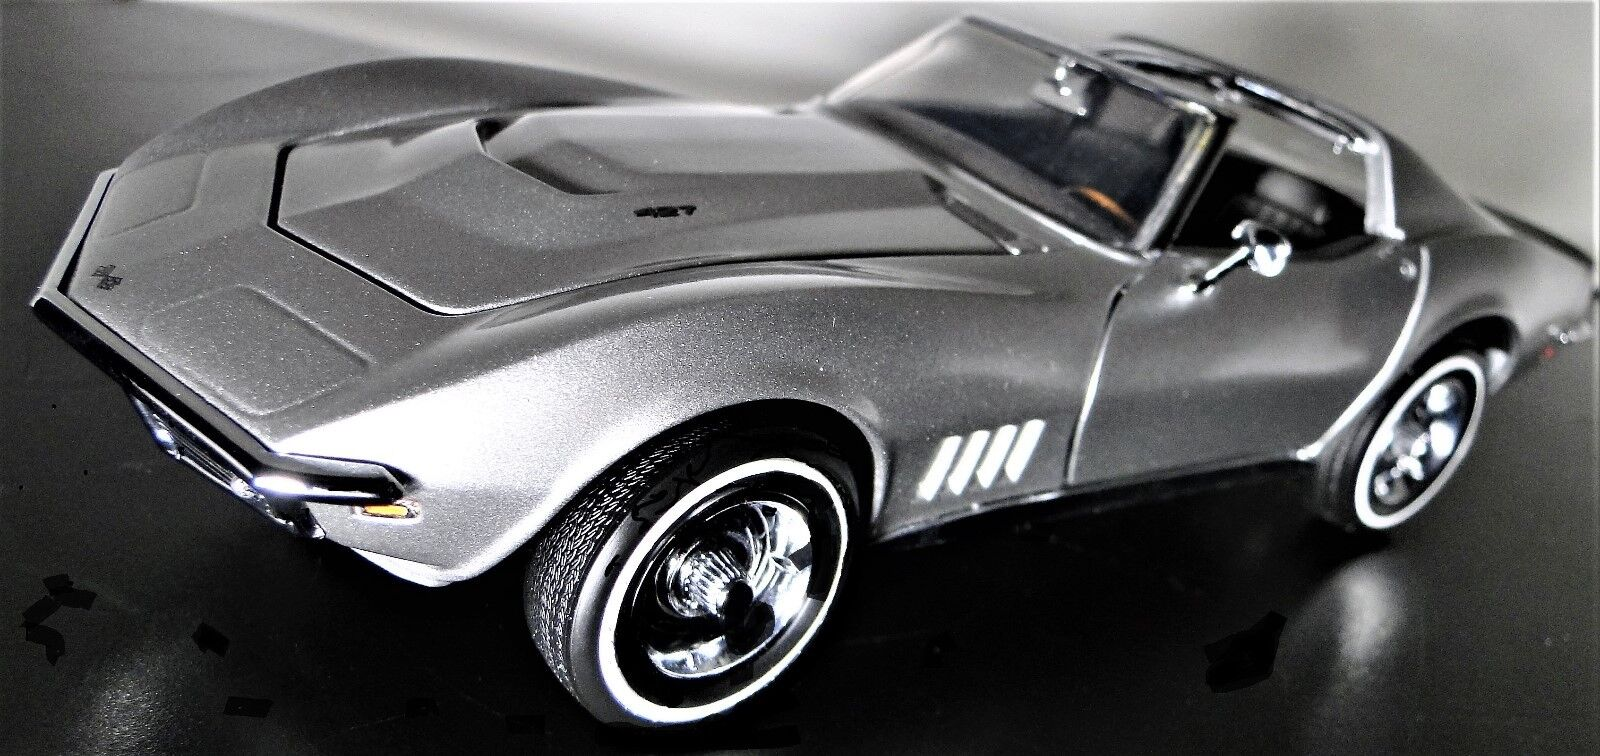 1971 Vette Chevy Built V 8 1 Corvette Sport 24 Race Car 18 Vintage 25 Model 12